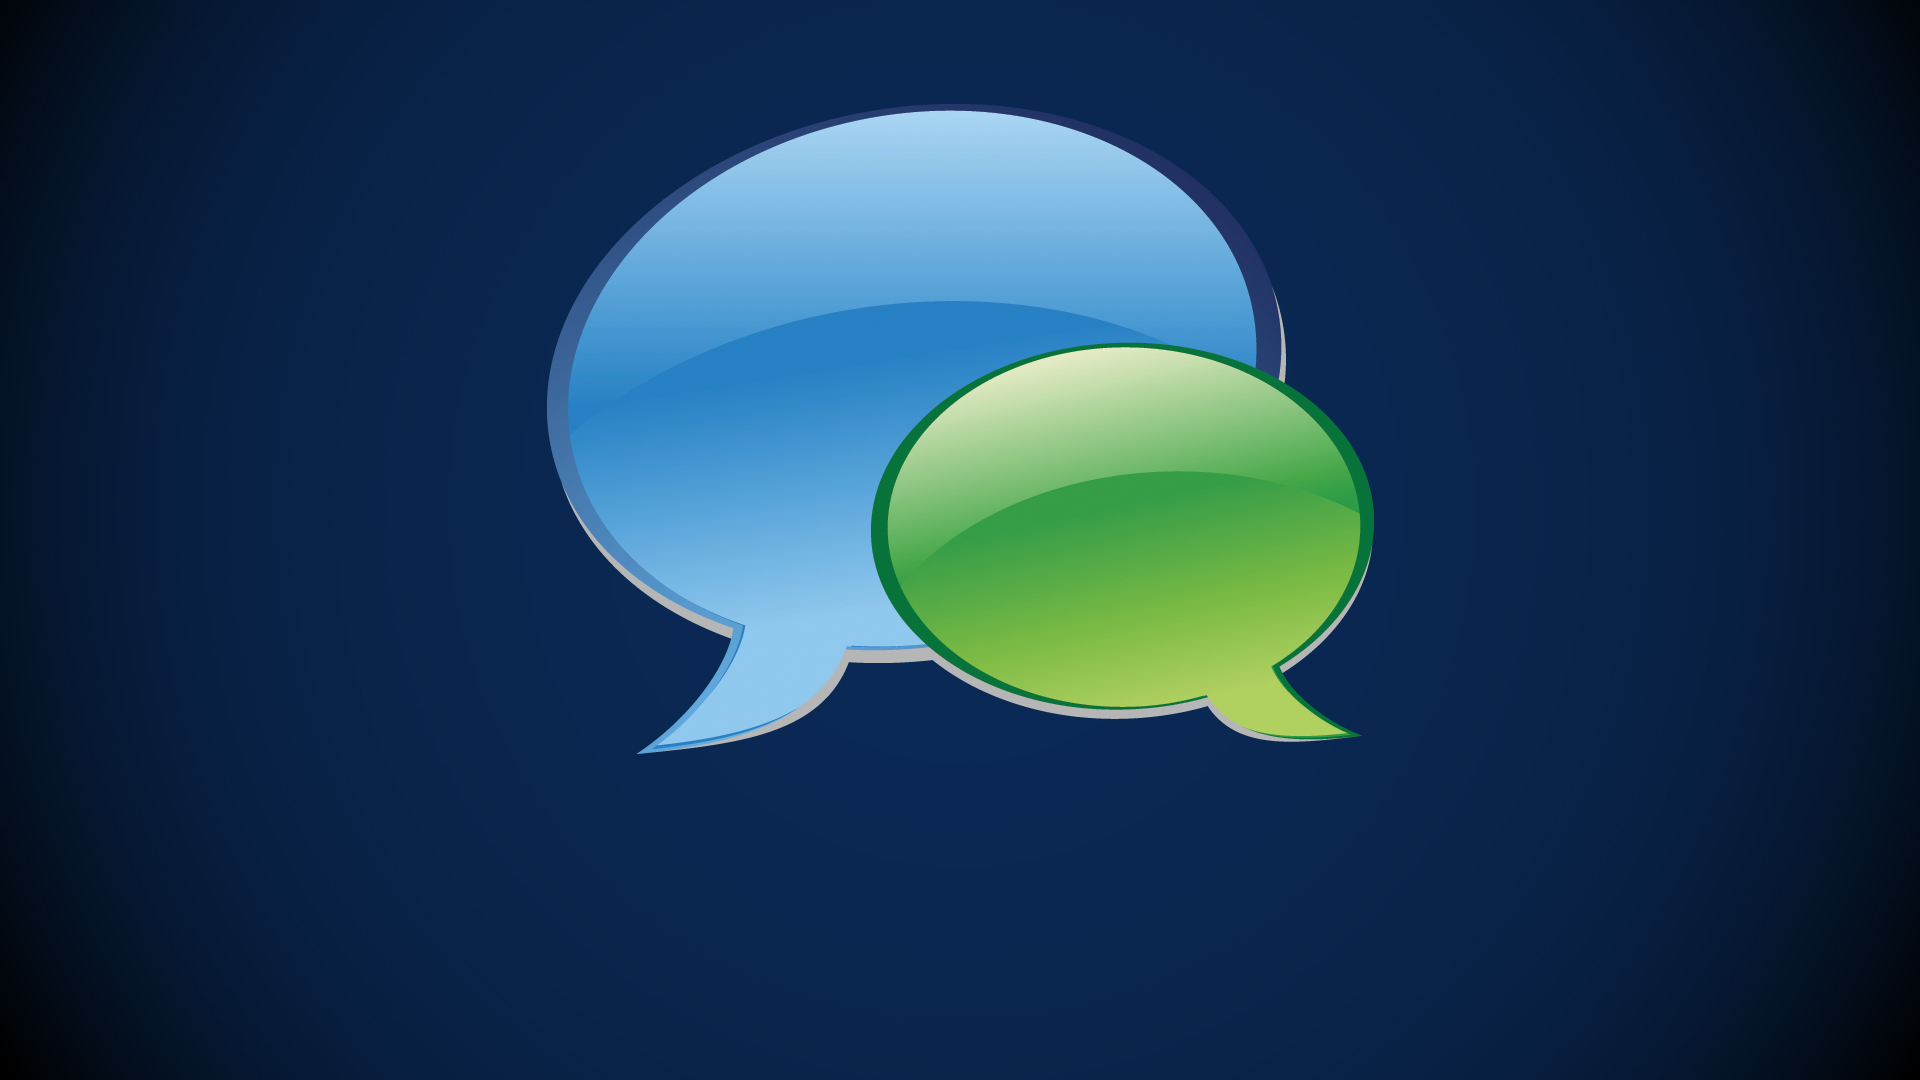 text-message-chat-bubbles2-ss-1920